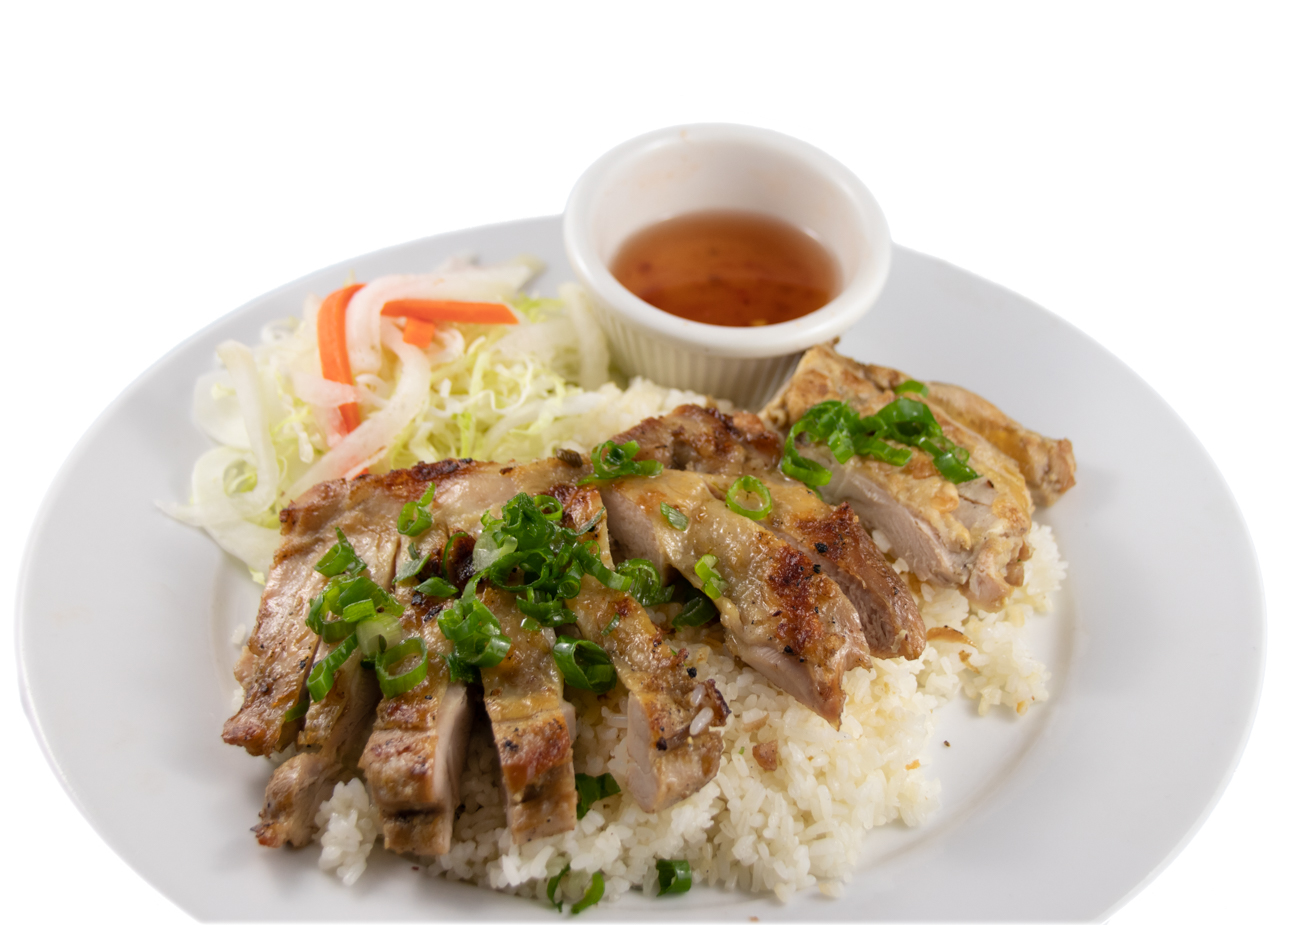 Cơm gà – Barbequed chicken with rice